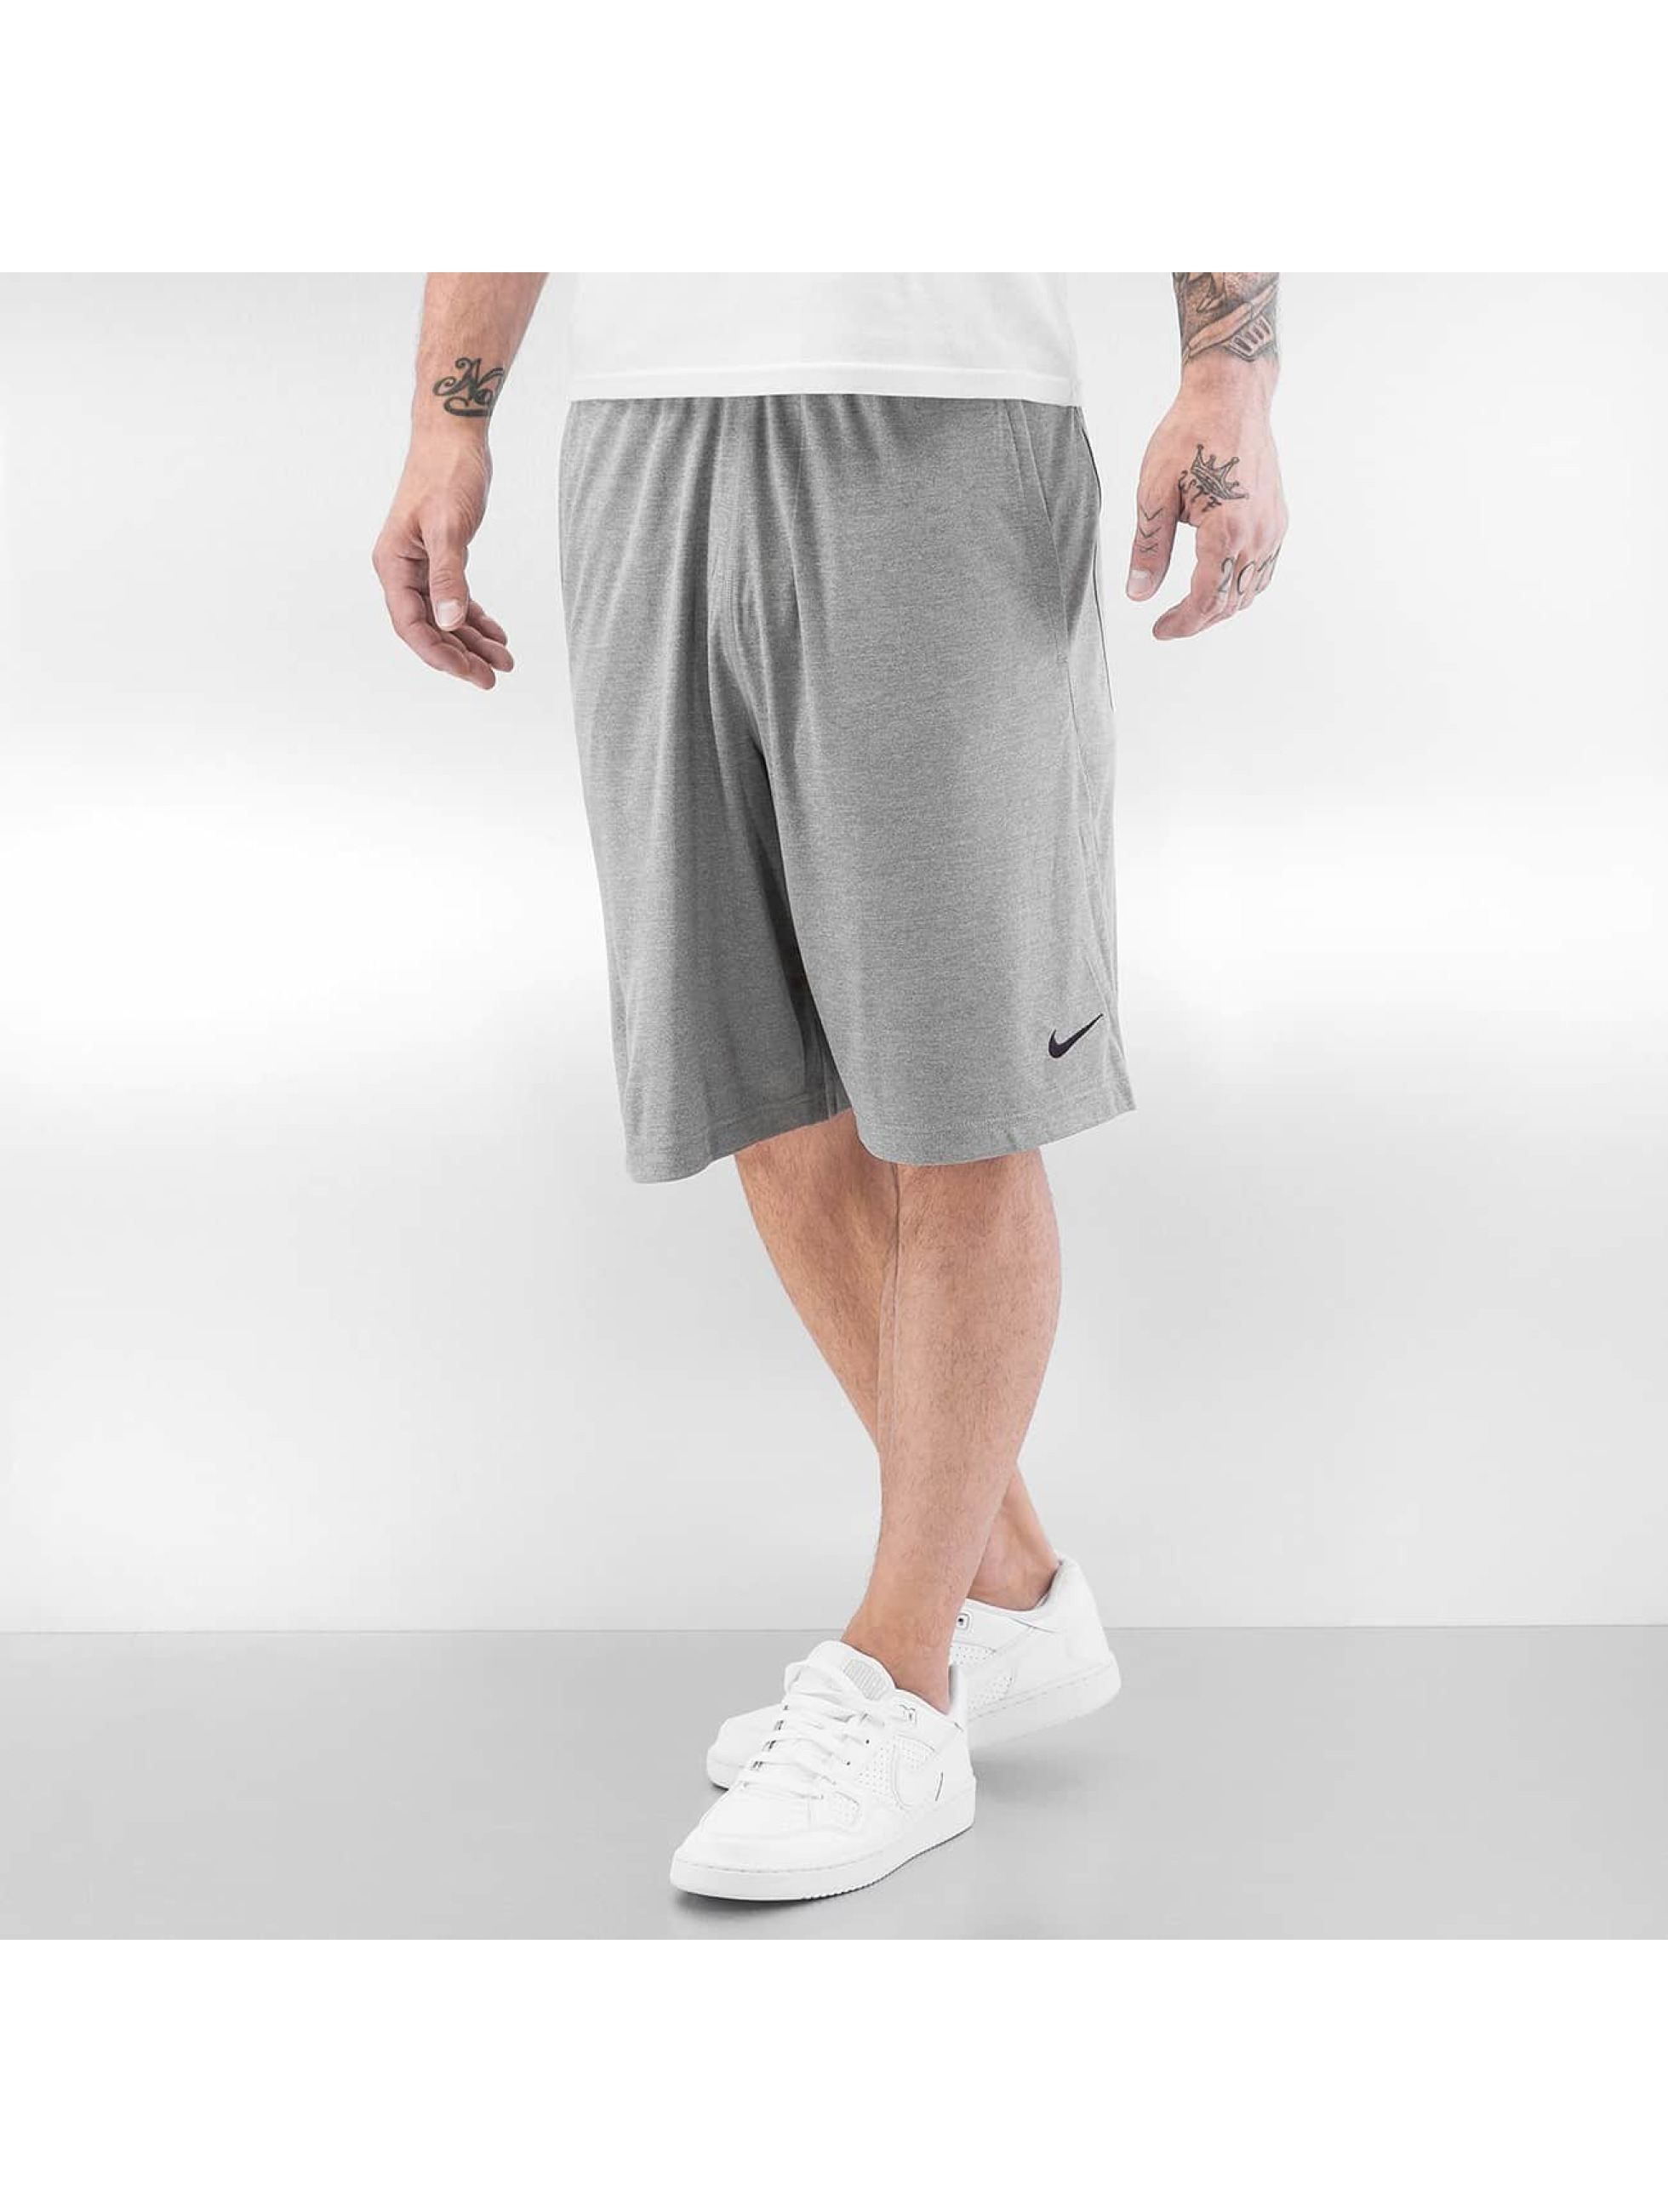 "Nike Shortsit Fly 9"" harmaa"